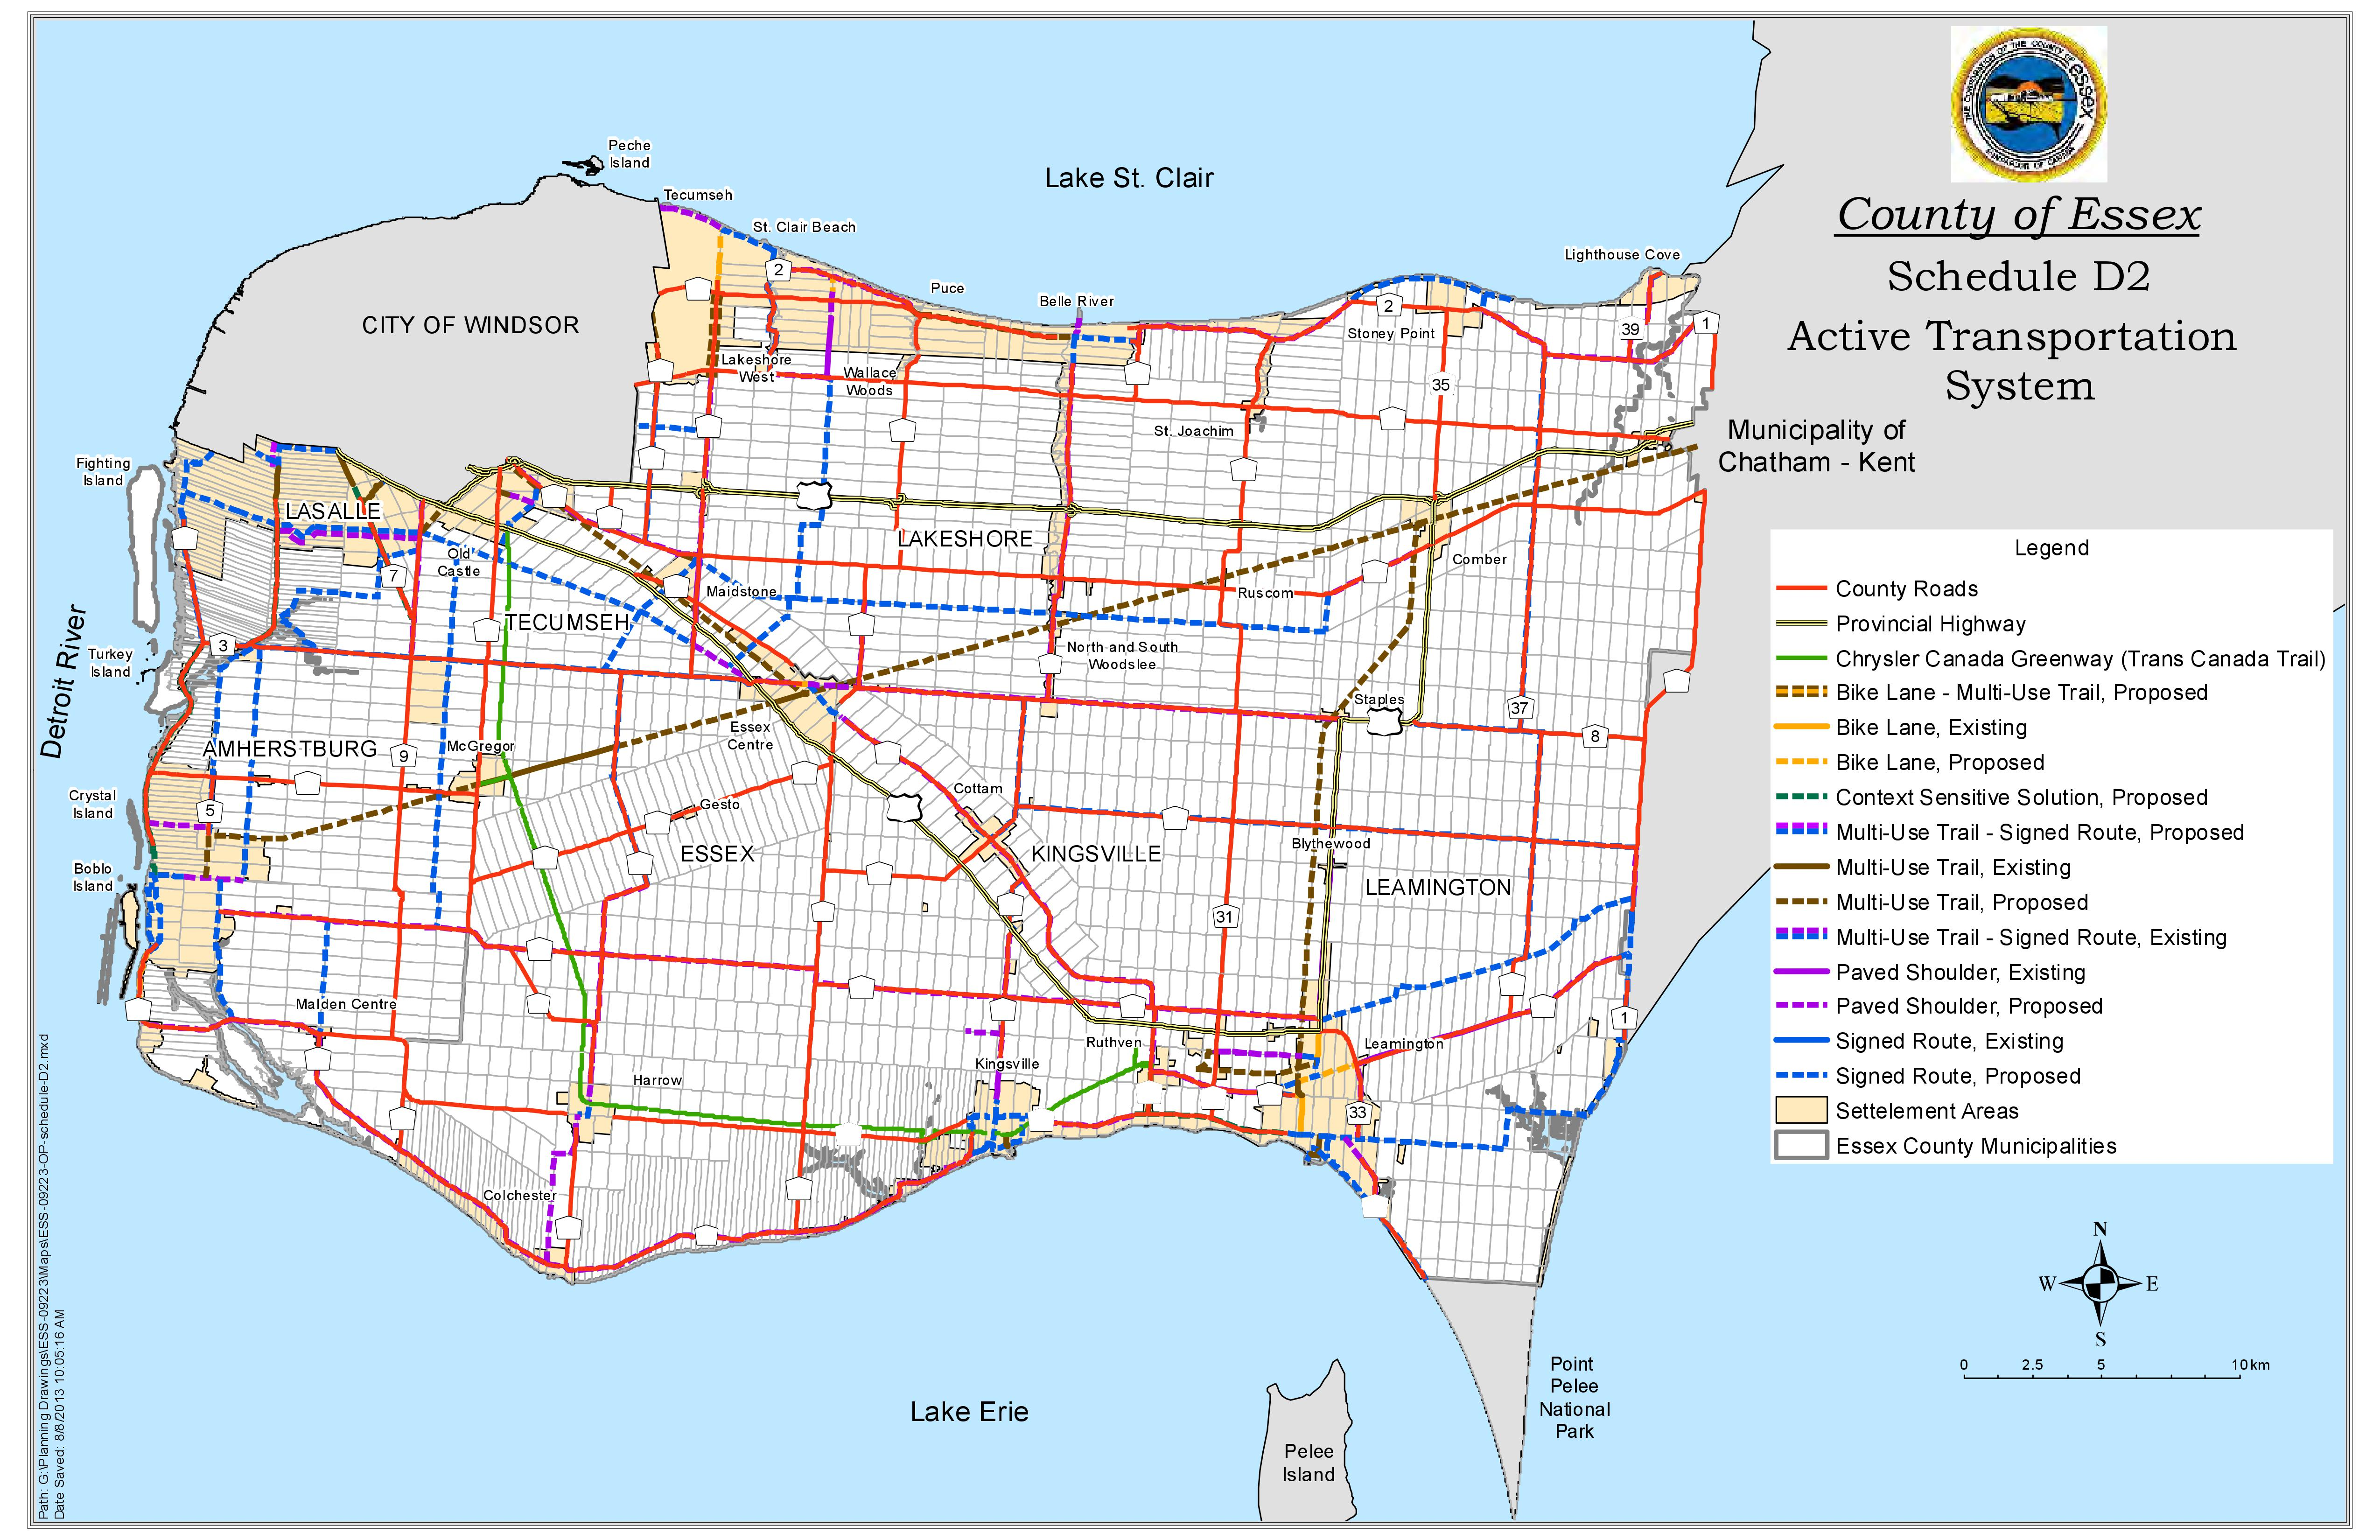 A map of Essex County showing the Active Transportation System